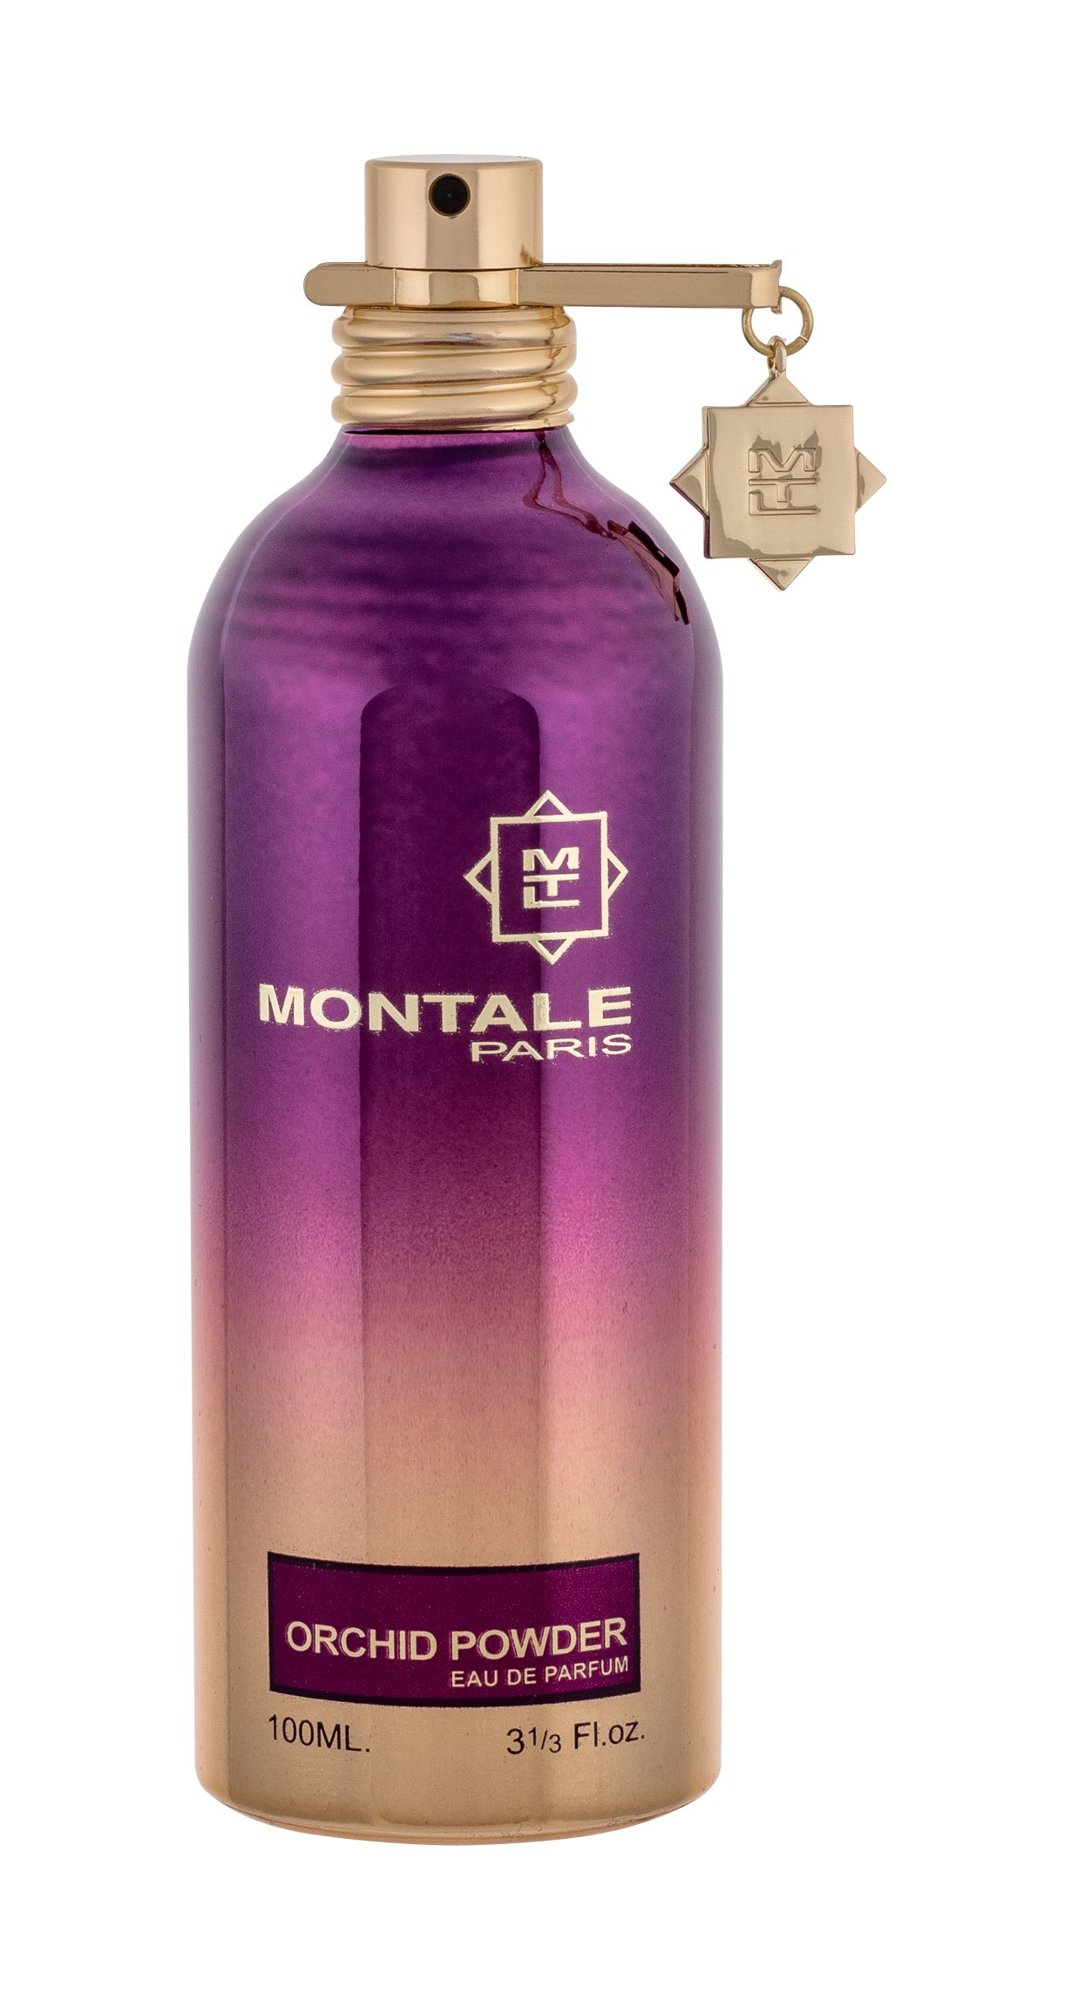 Montale Paris Orchid Powder Eau de Parfum 100ml